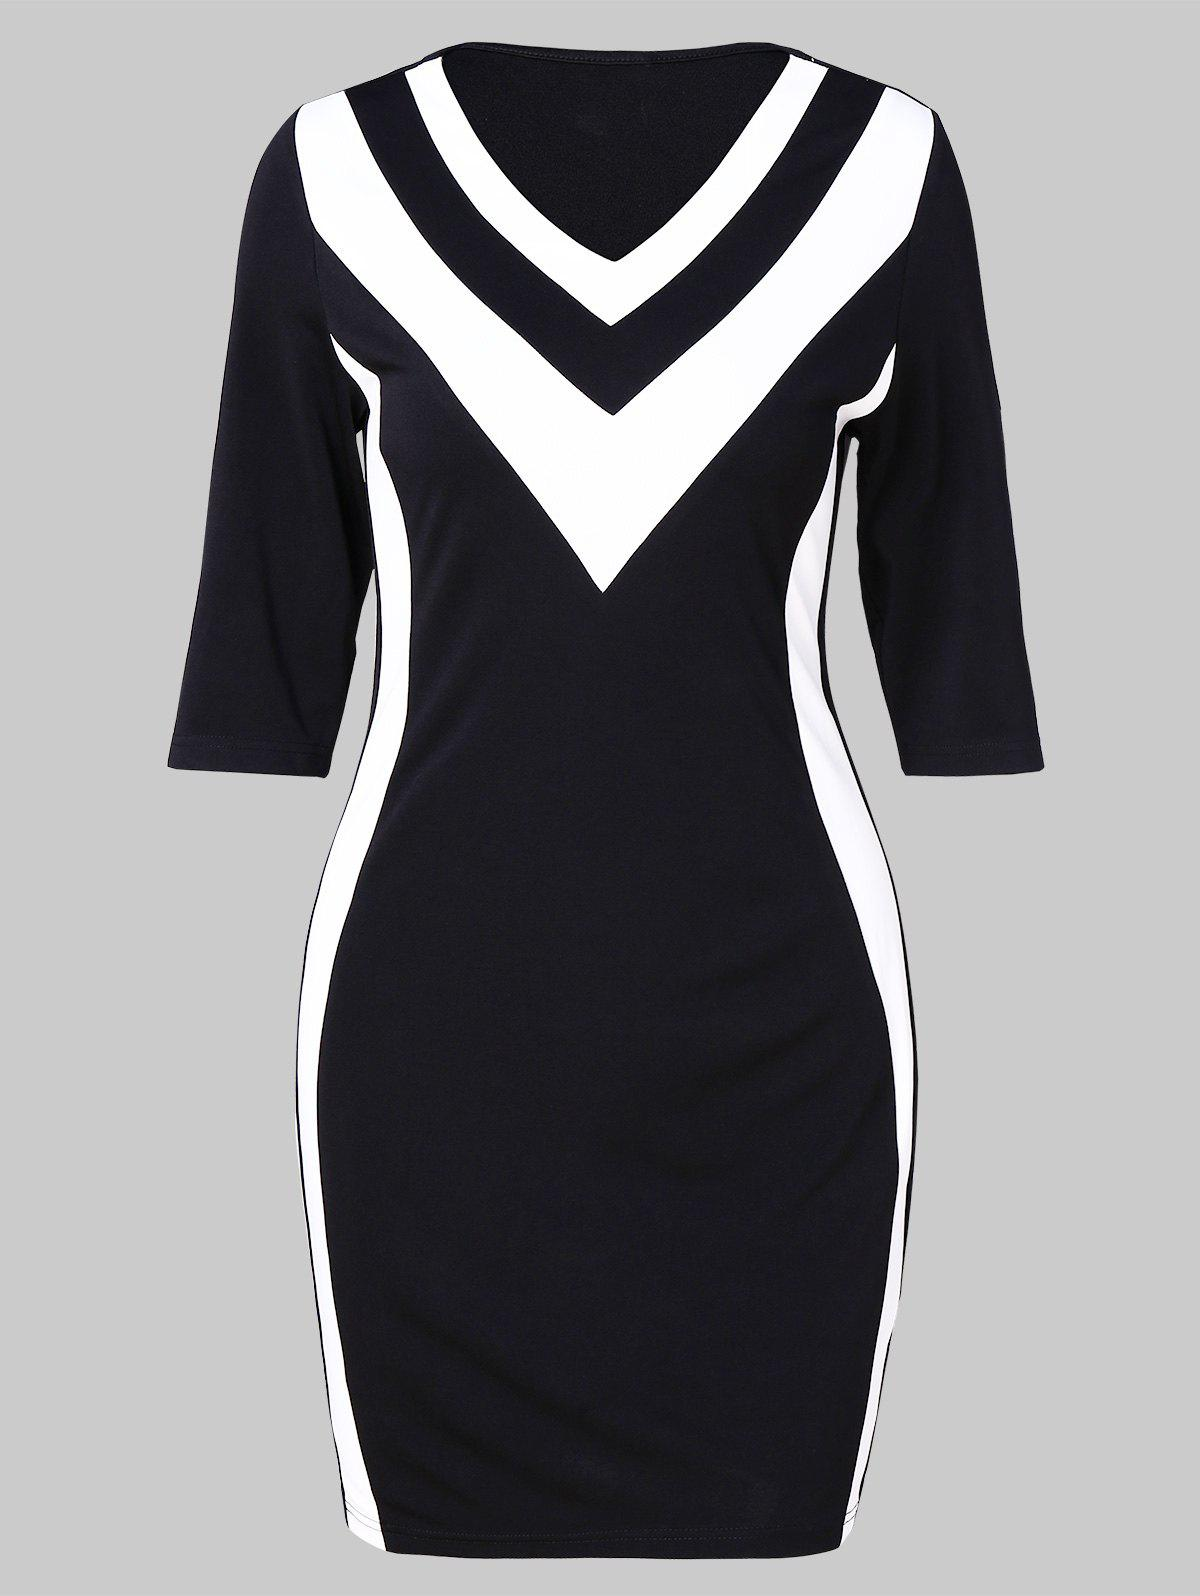 346f262b2a2 2019 Zig Zag Two Tone Bodycon Dress